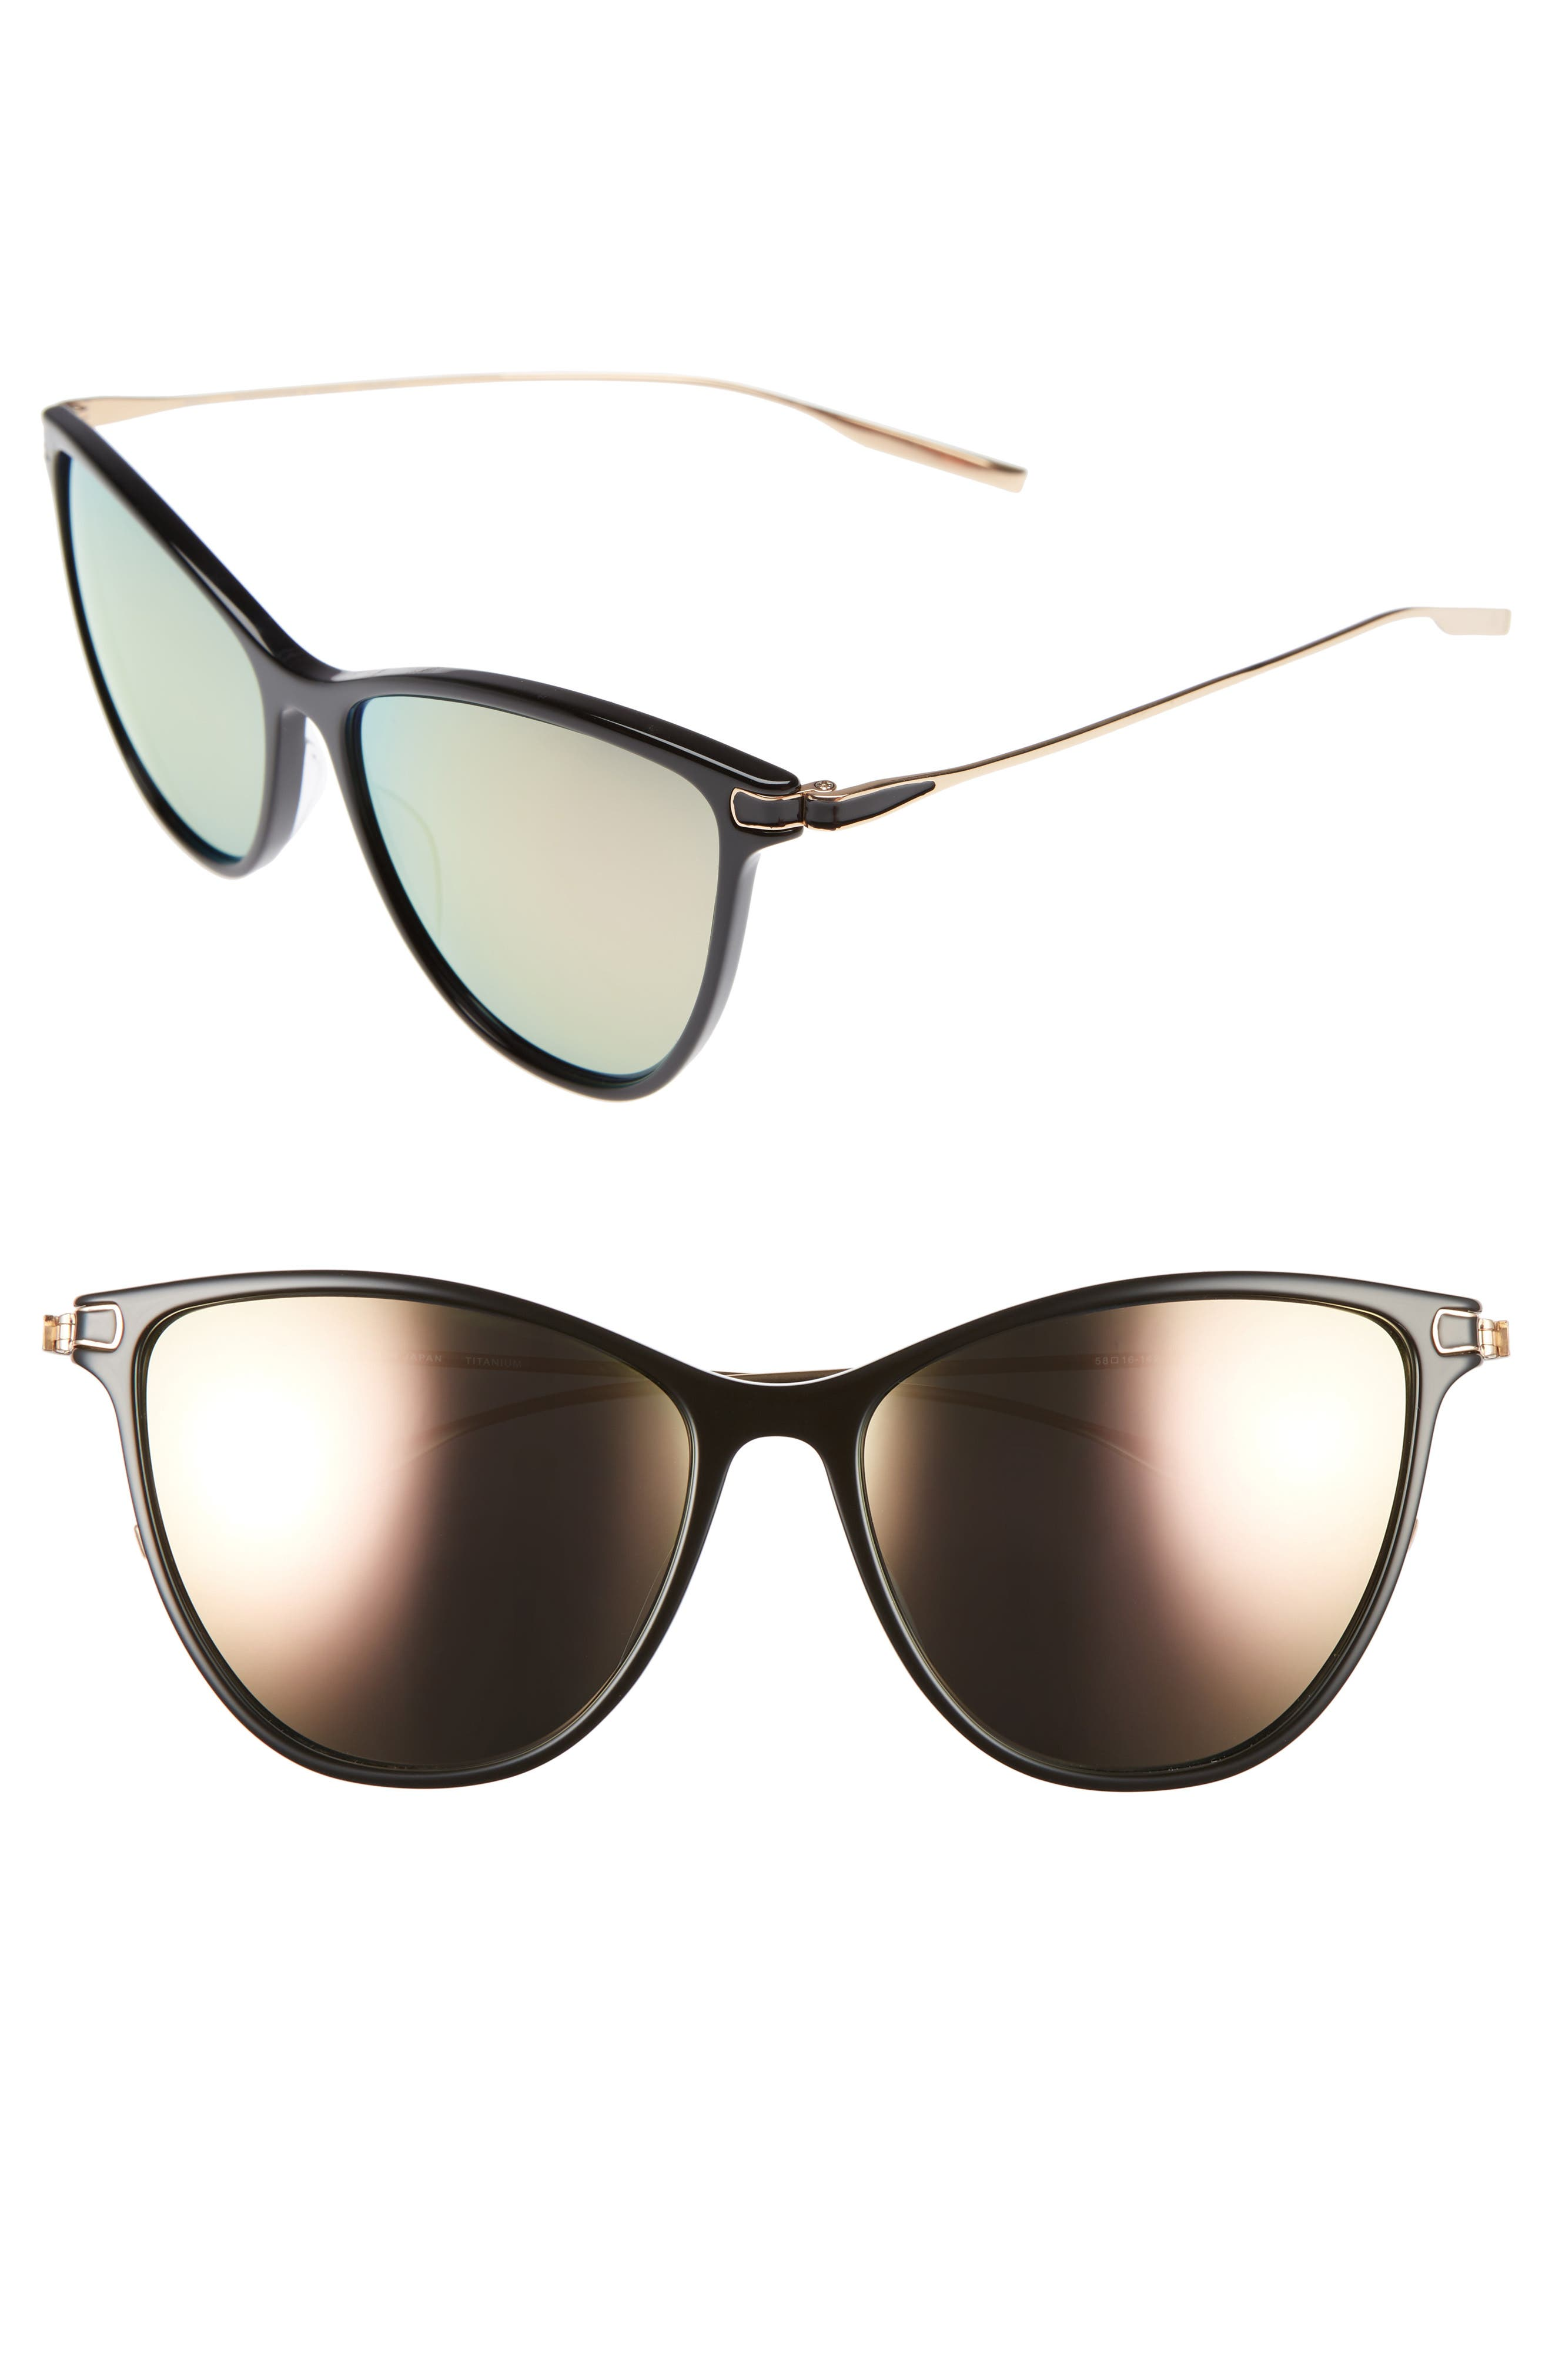 Nia 58mm Polarized Cat Eye Sunglasses,                             Main thumbnail 1, color,                             001